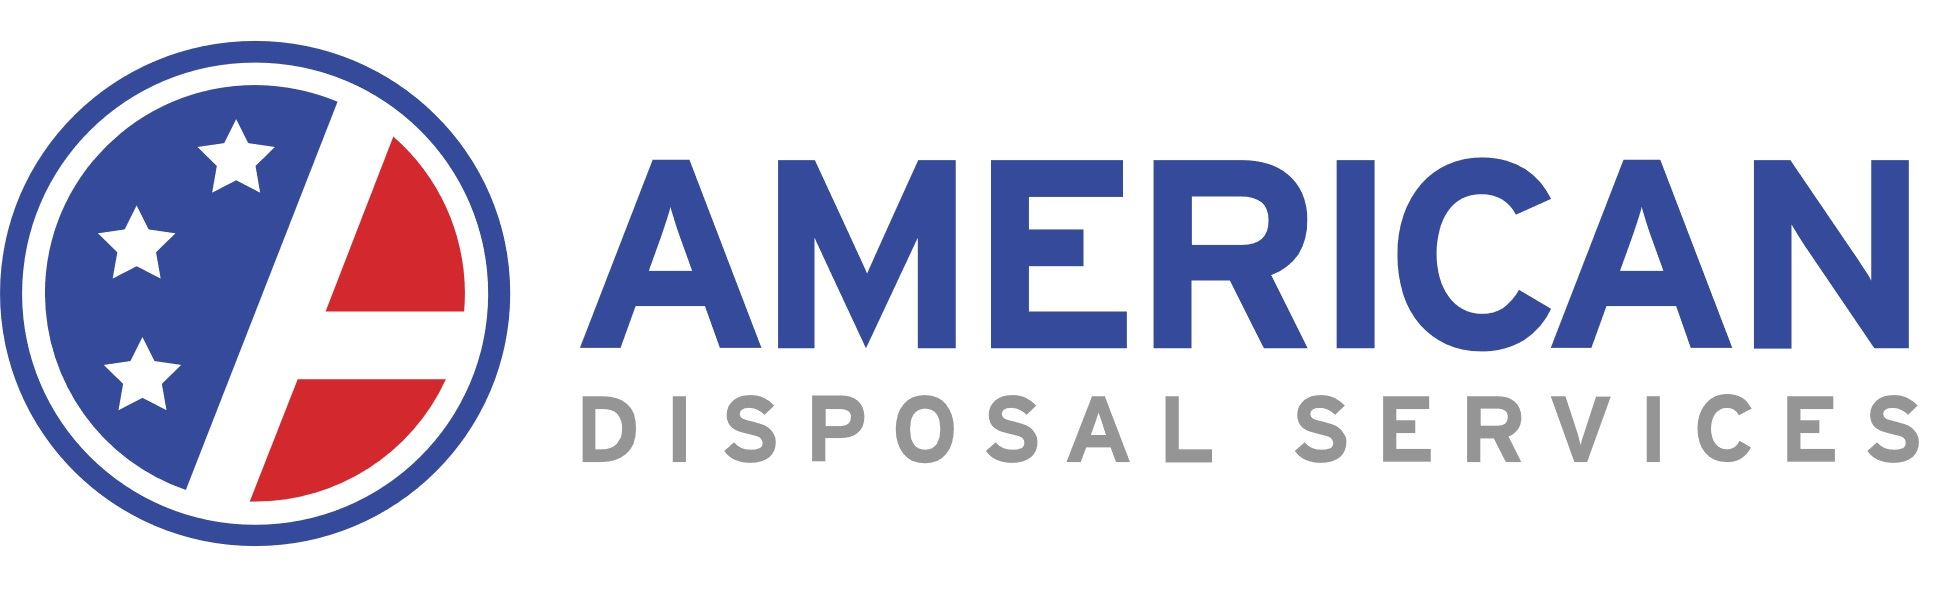 American Disposal Services Logo